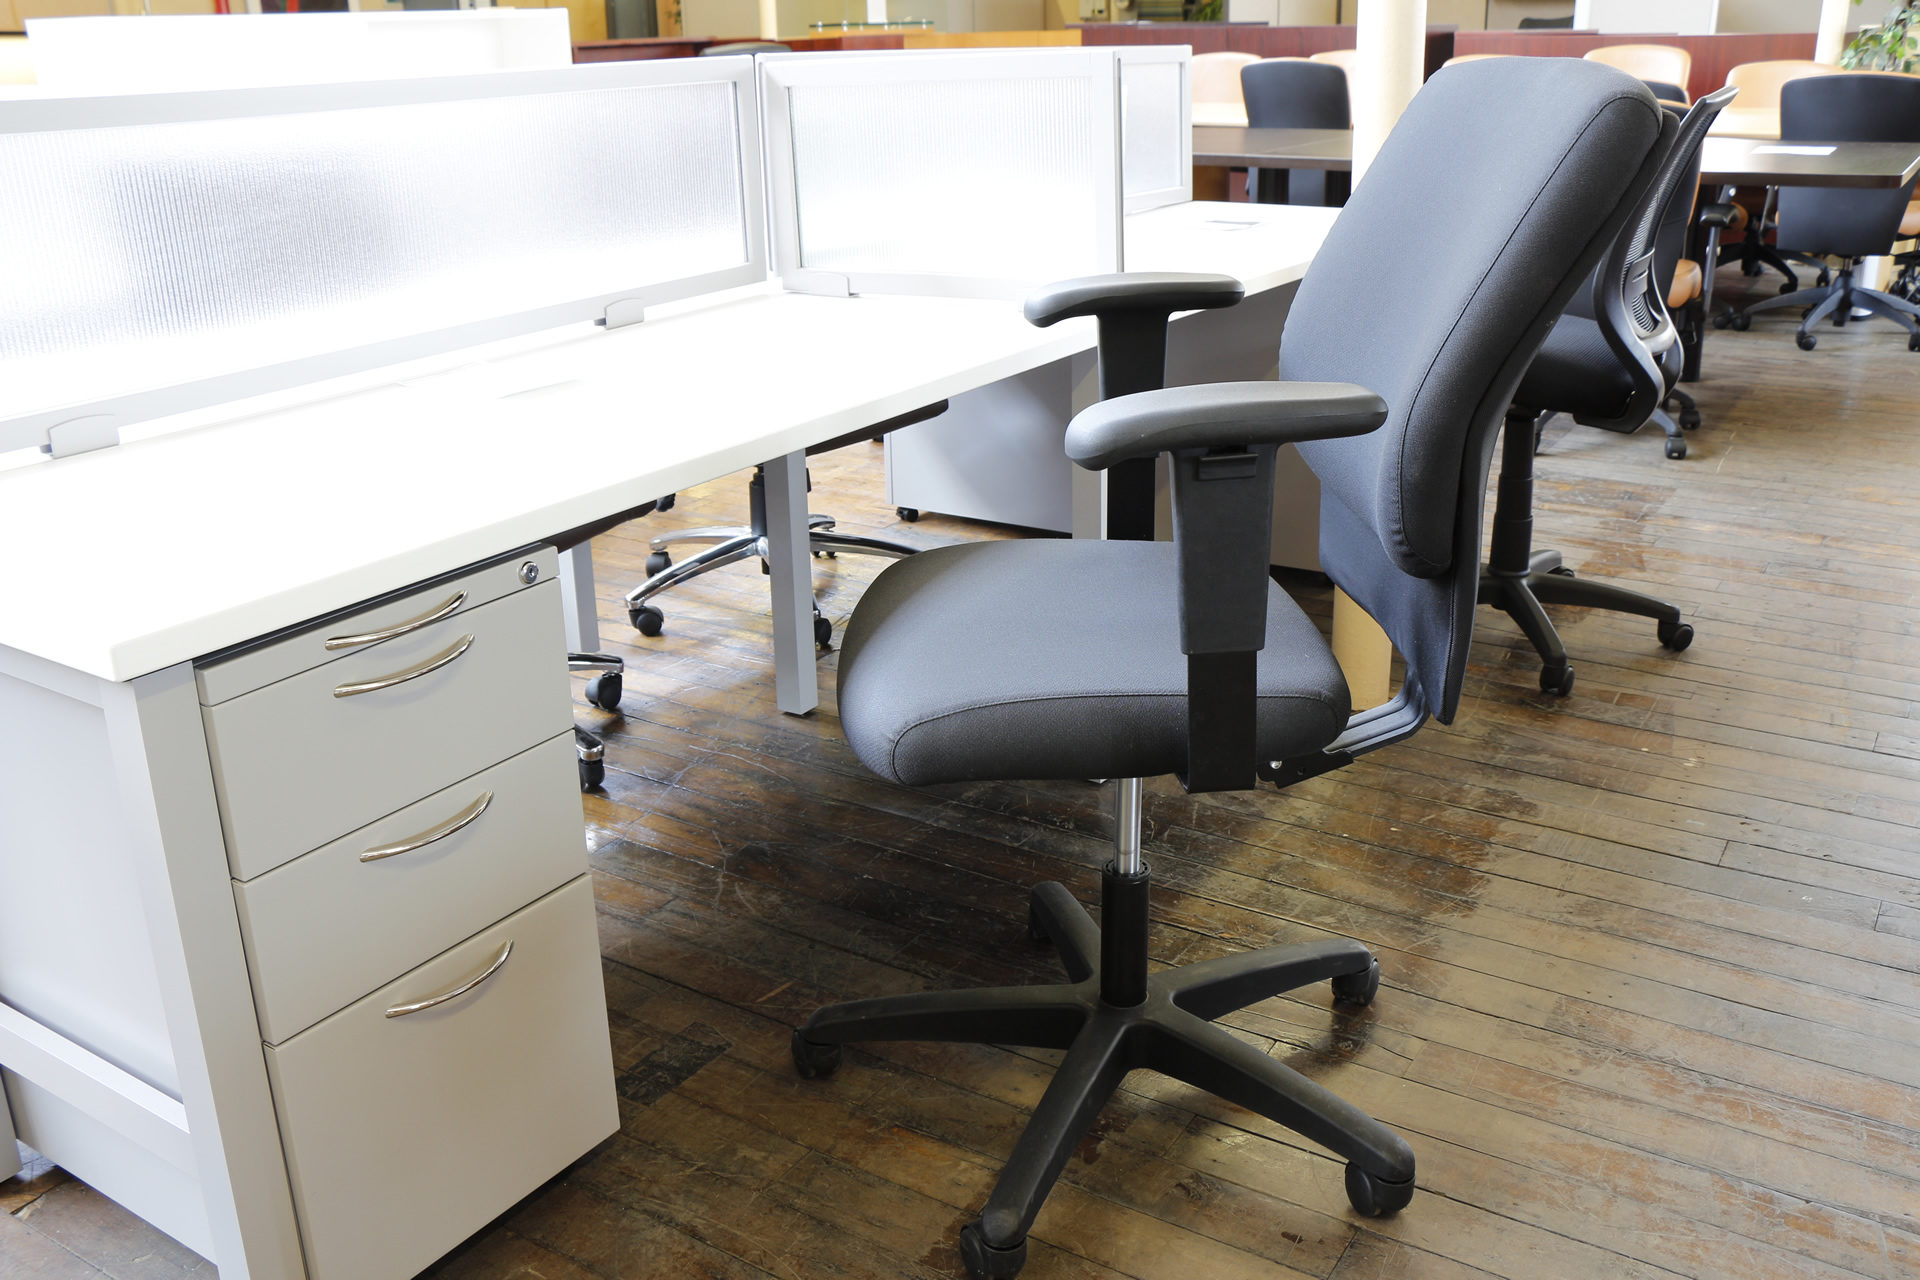 peartreeofficefurniture_peartreeofficefurniture_mg_4432.jpg